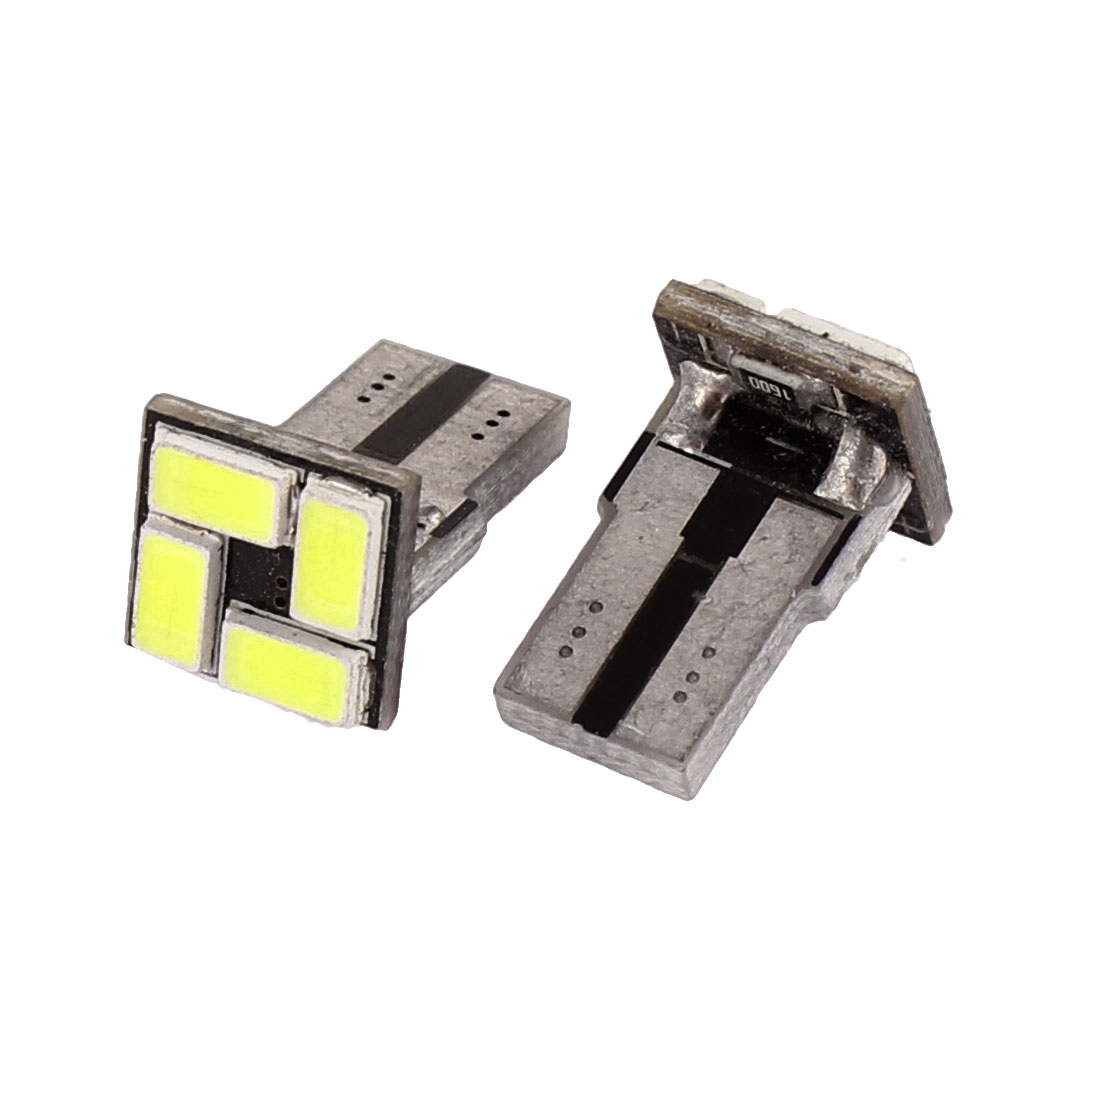 2 Pcs Car T10 W5W 5630 SMD 4 LEDs White Turning Signal Light Lamp internal